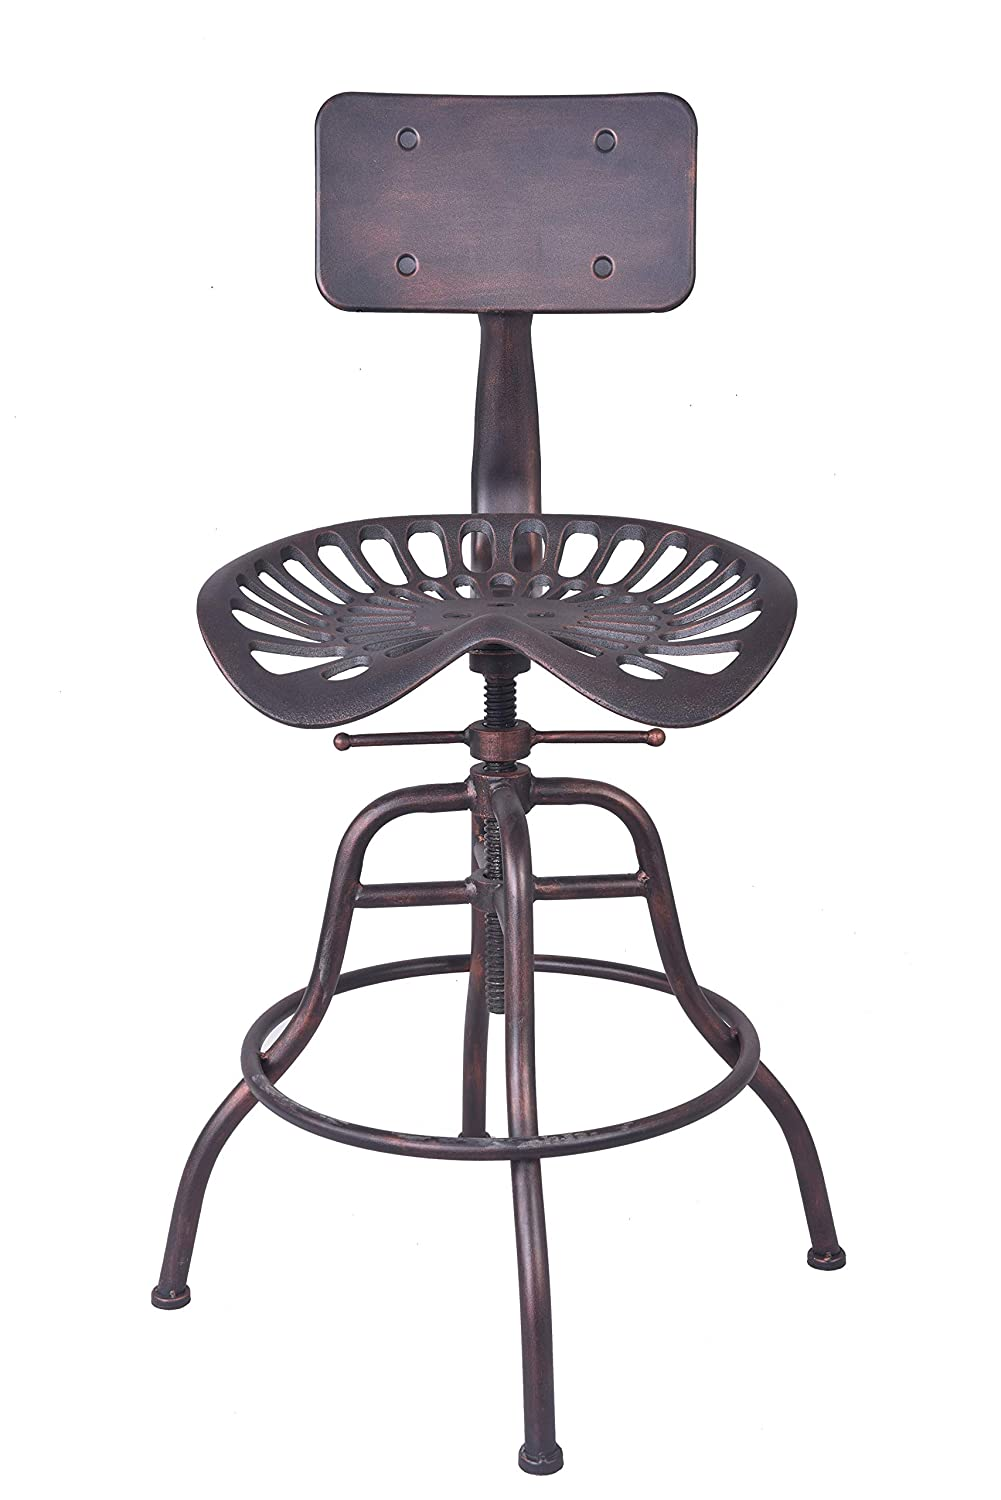 Lokkhan Cast Iron Tractor Seat Bar Stool With Backrest